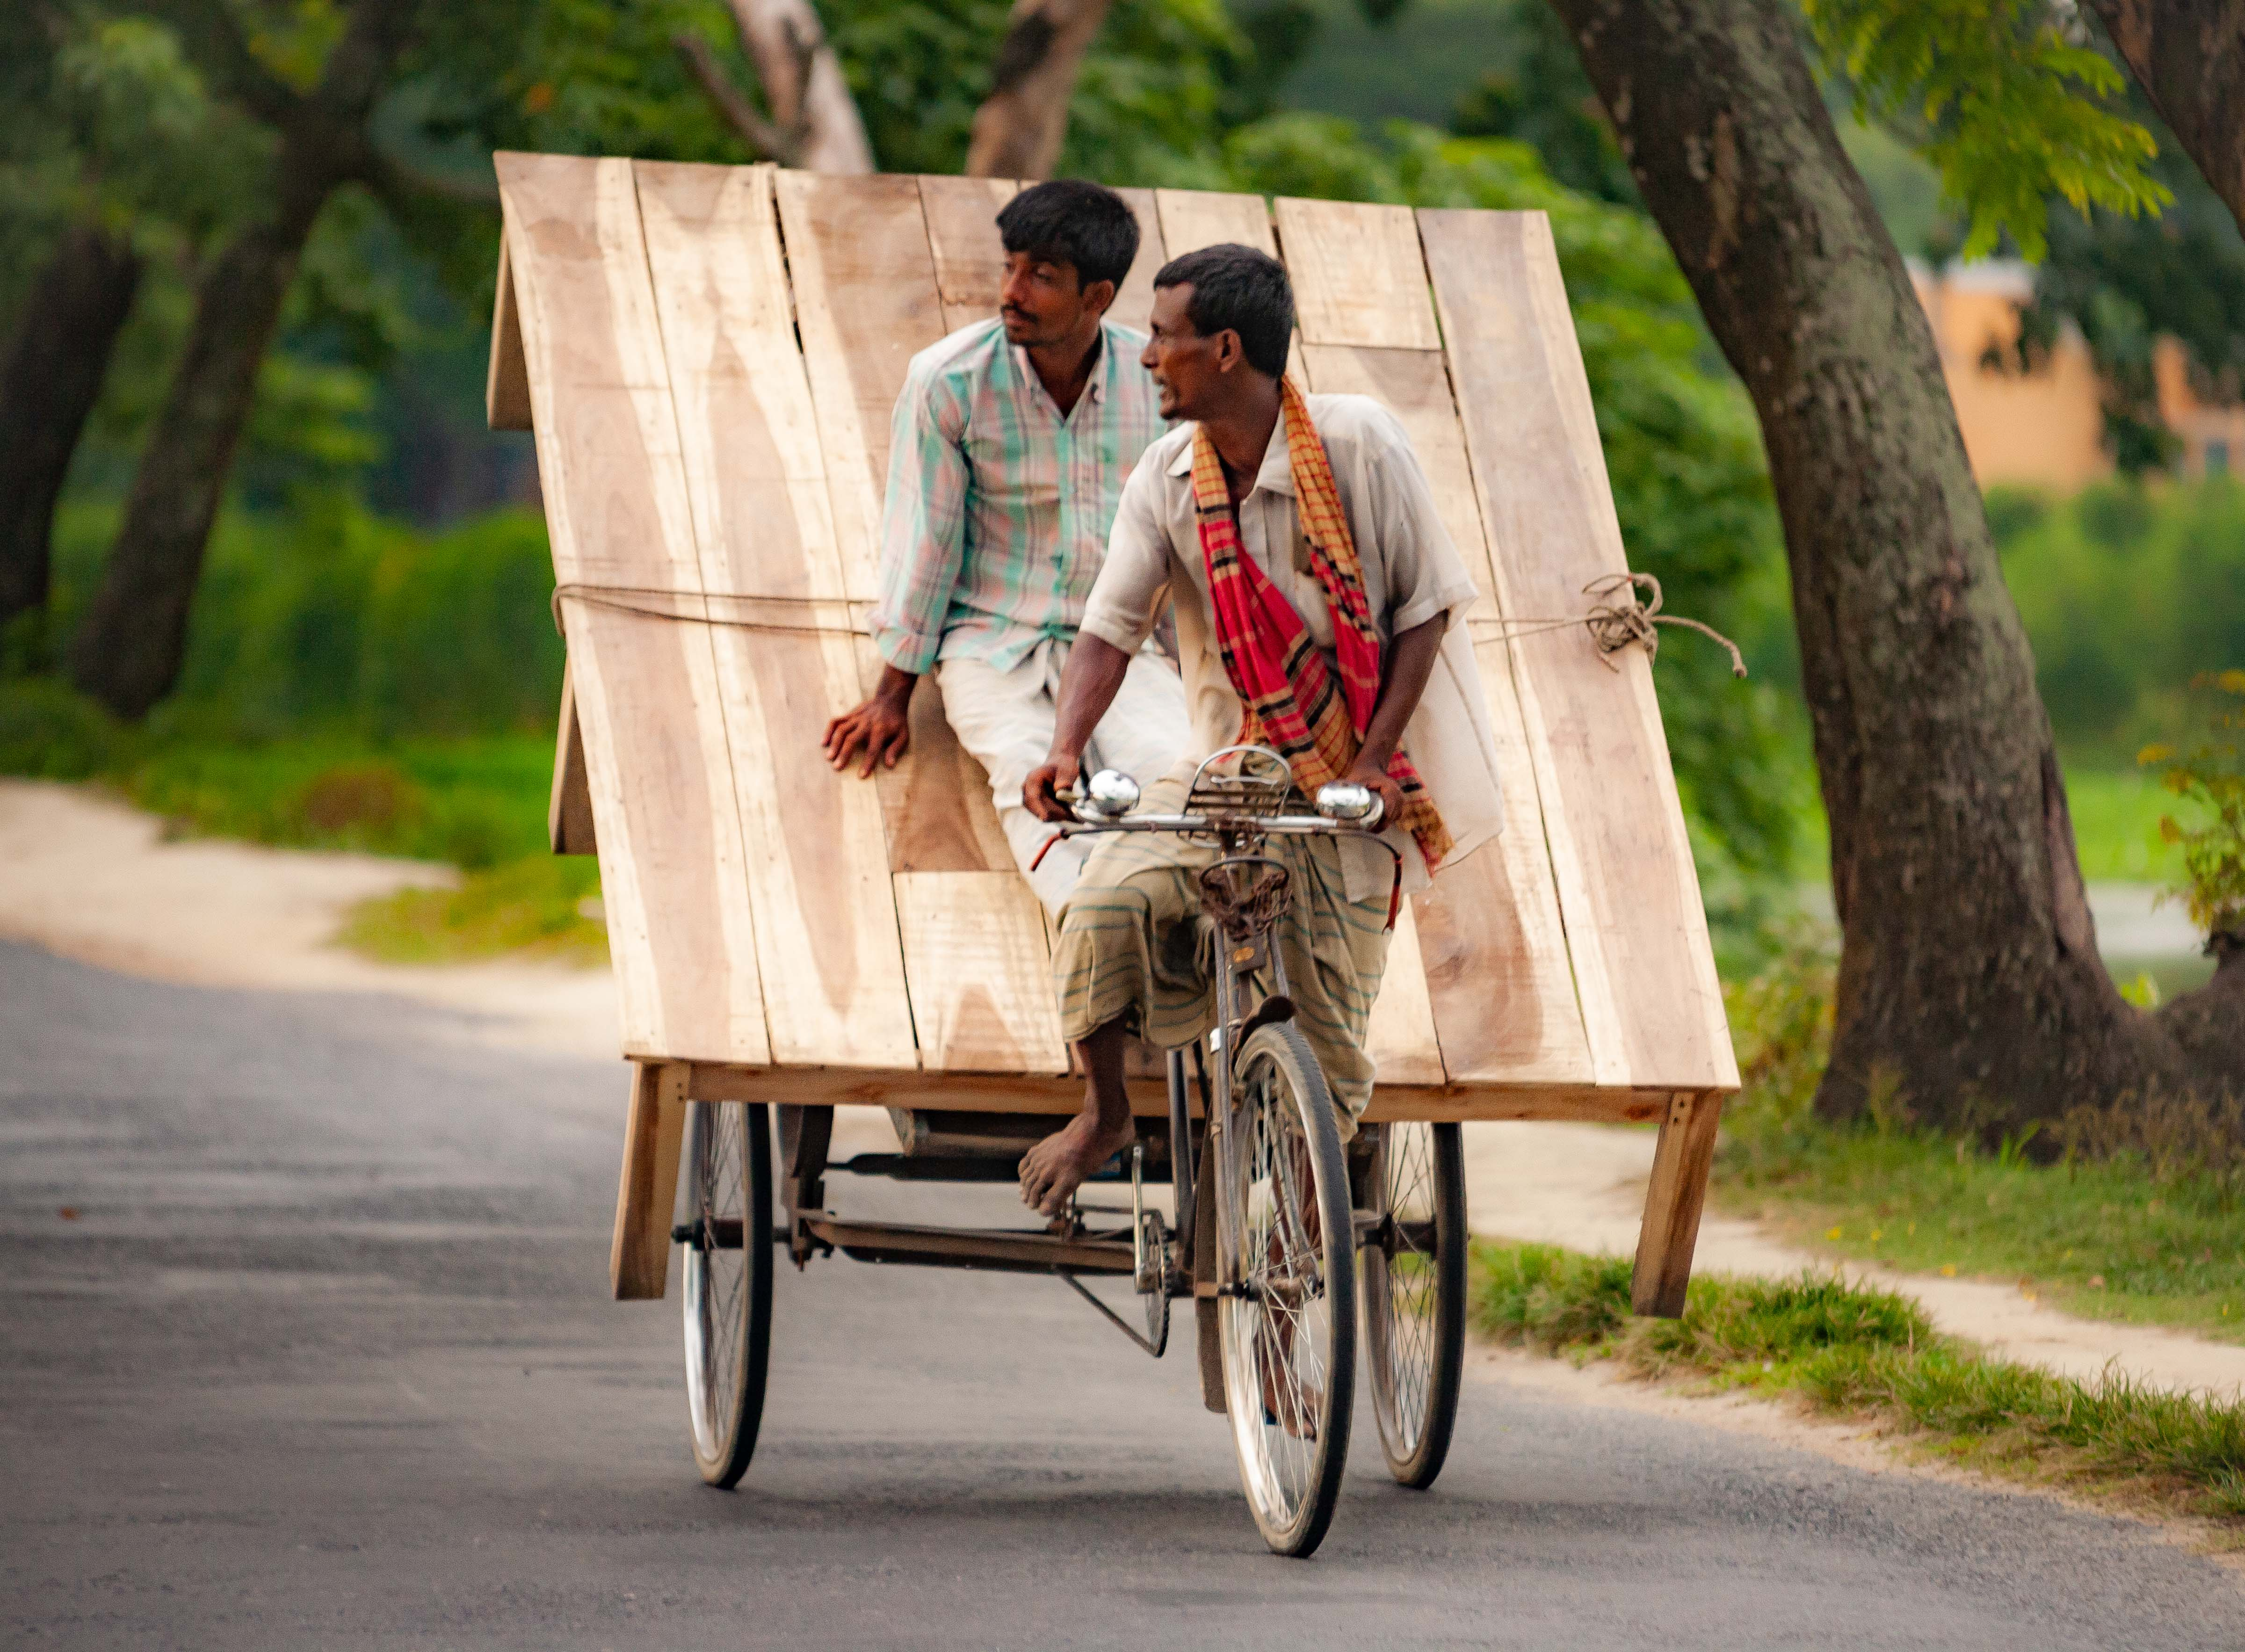 Bangladesh, Brahmanbaria Prov, Cart Furniture, 2009, IMG 8567